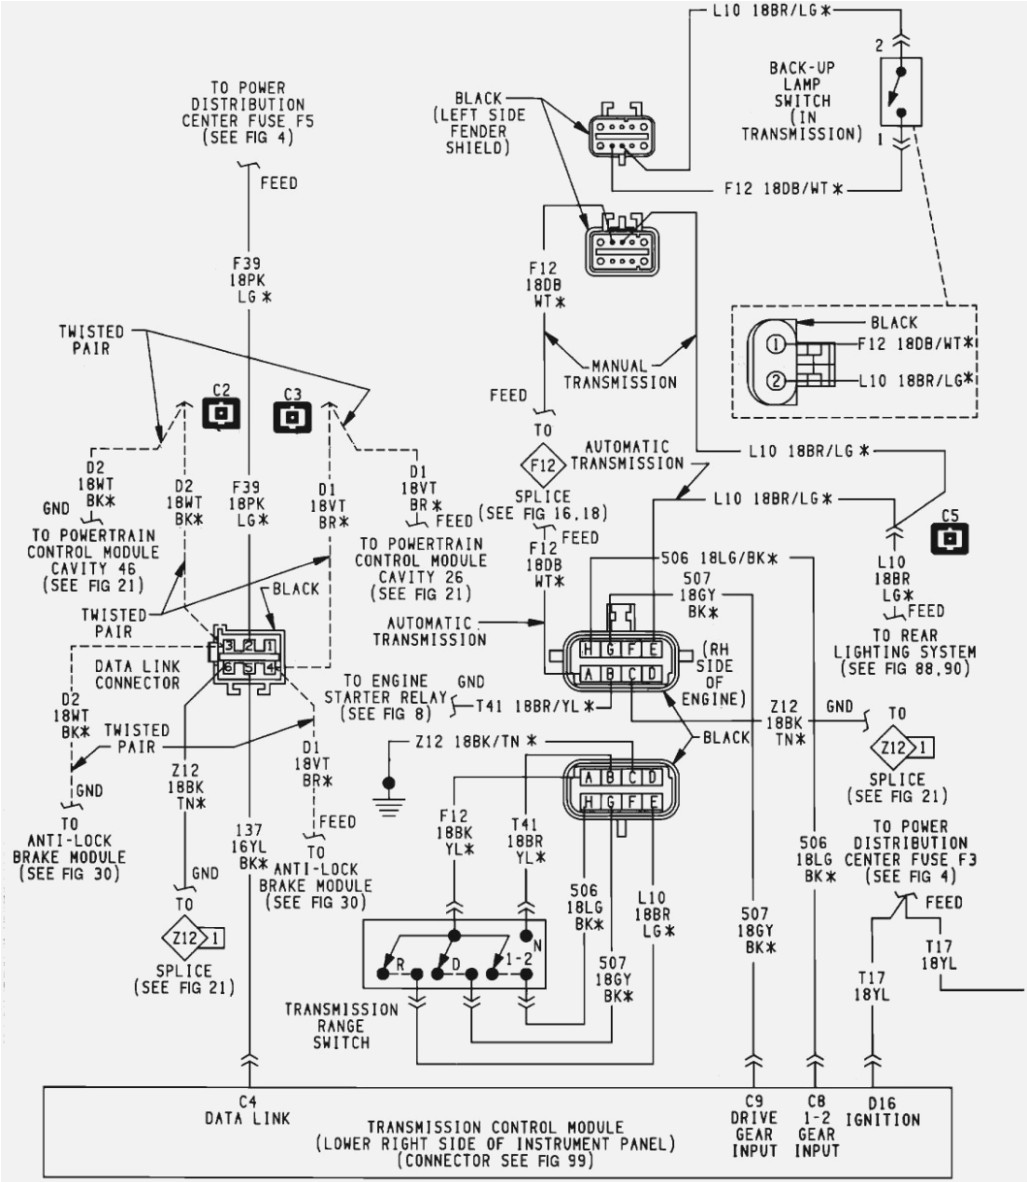 07 jeep liberty wiring diagram wiring diagram mix 2007 jeep liberty wiring schematic 19